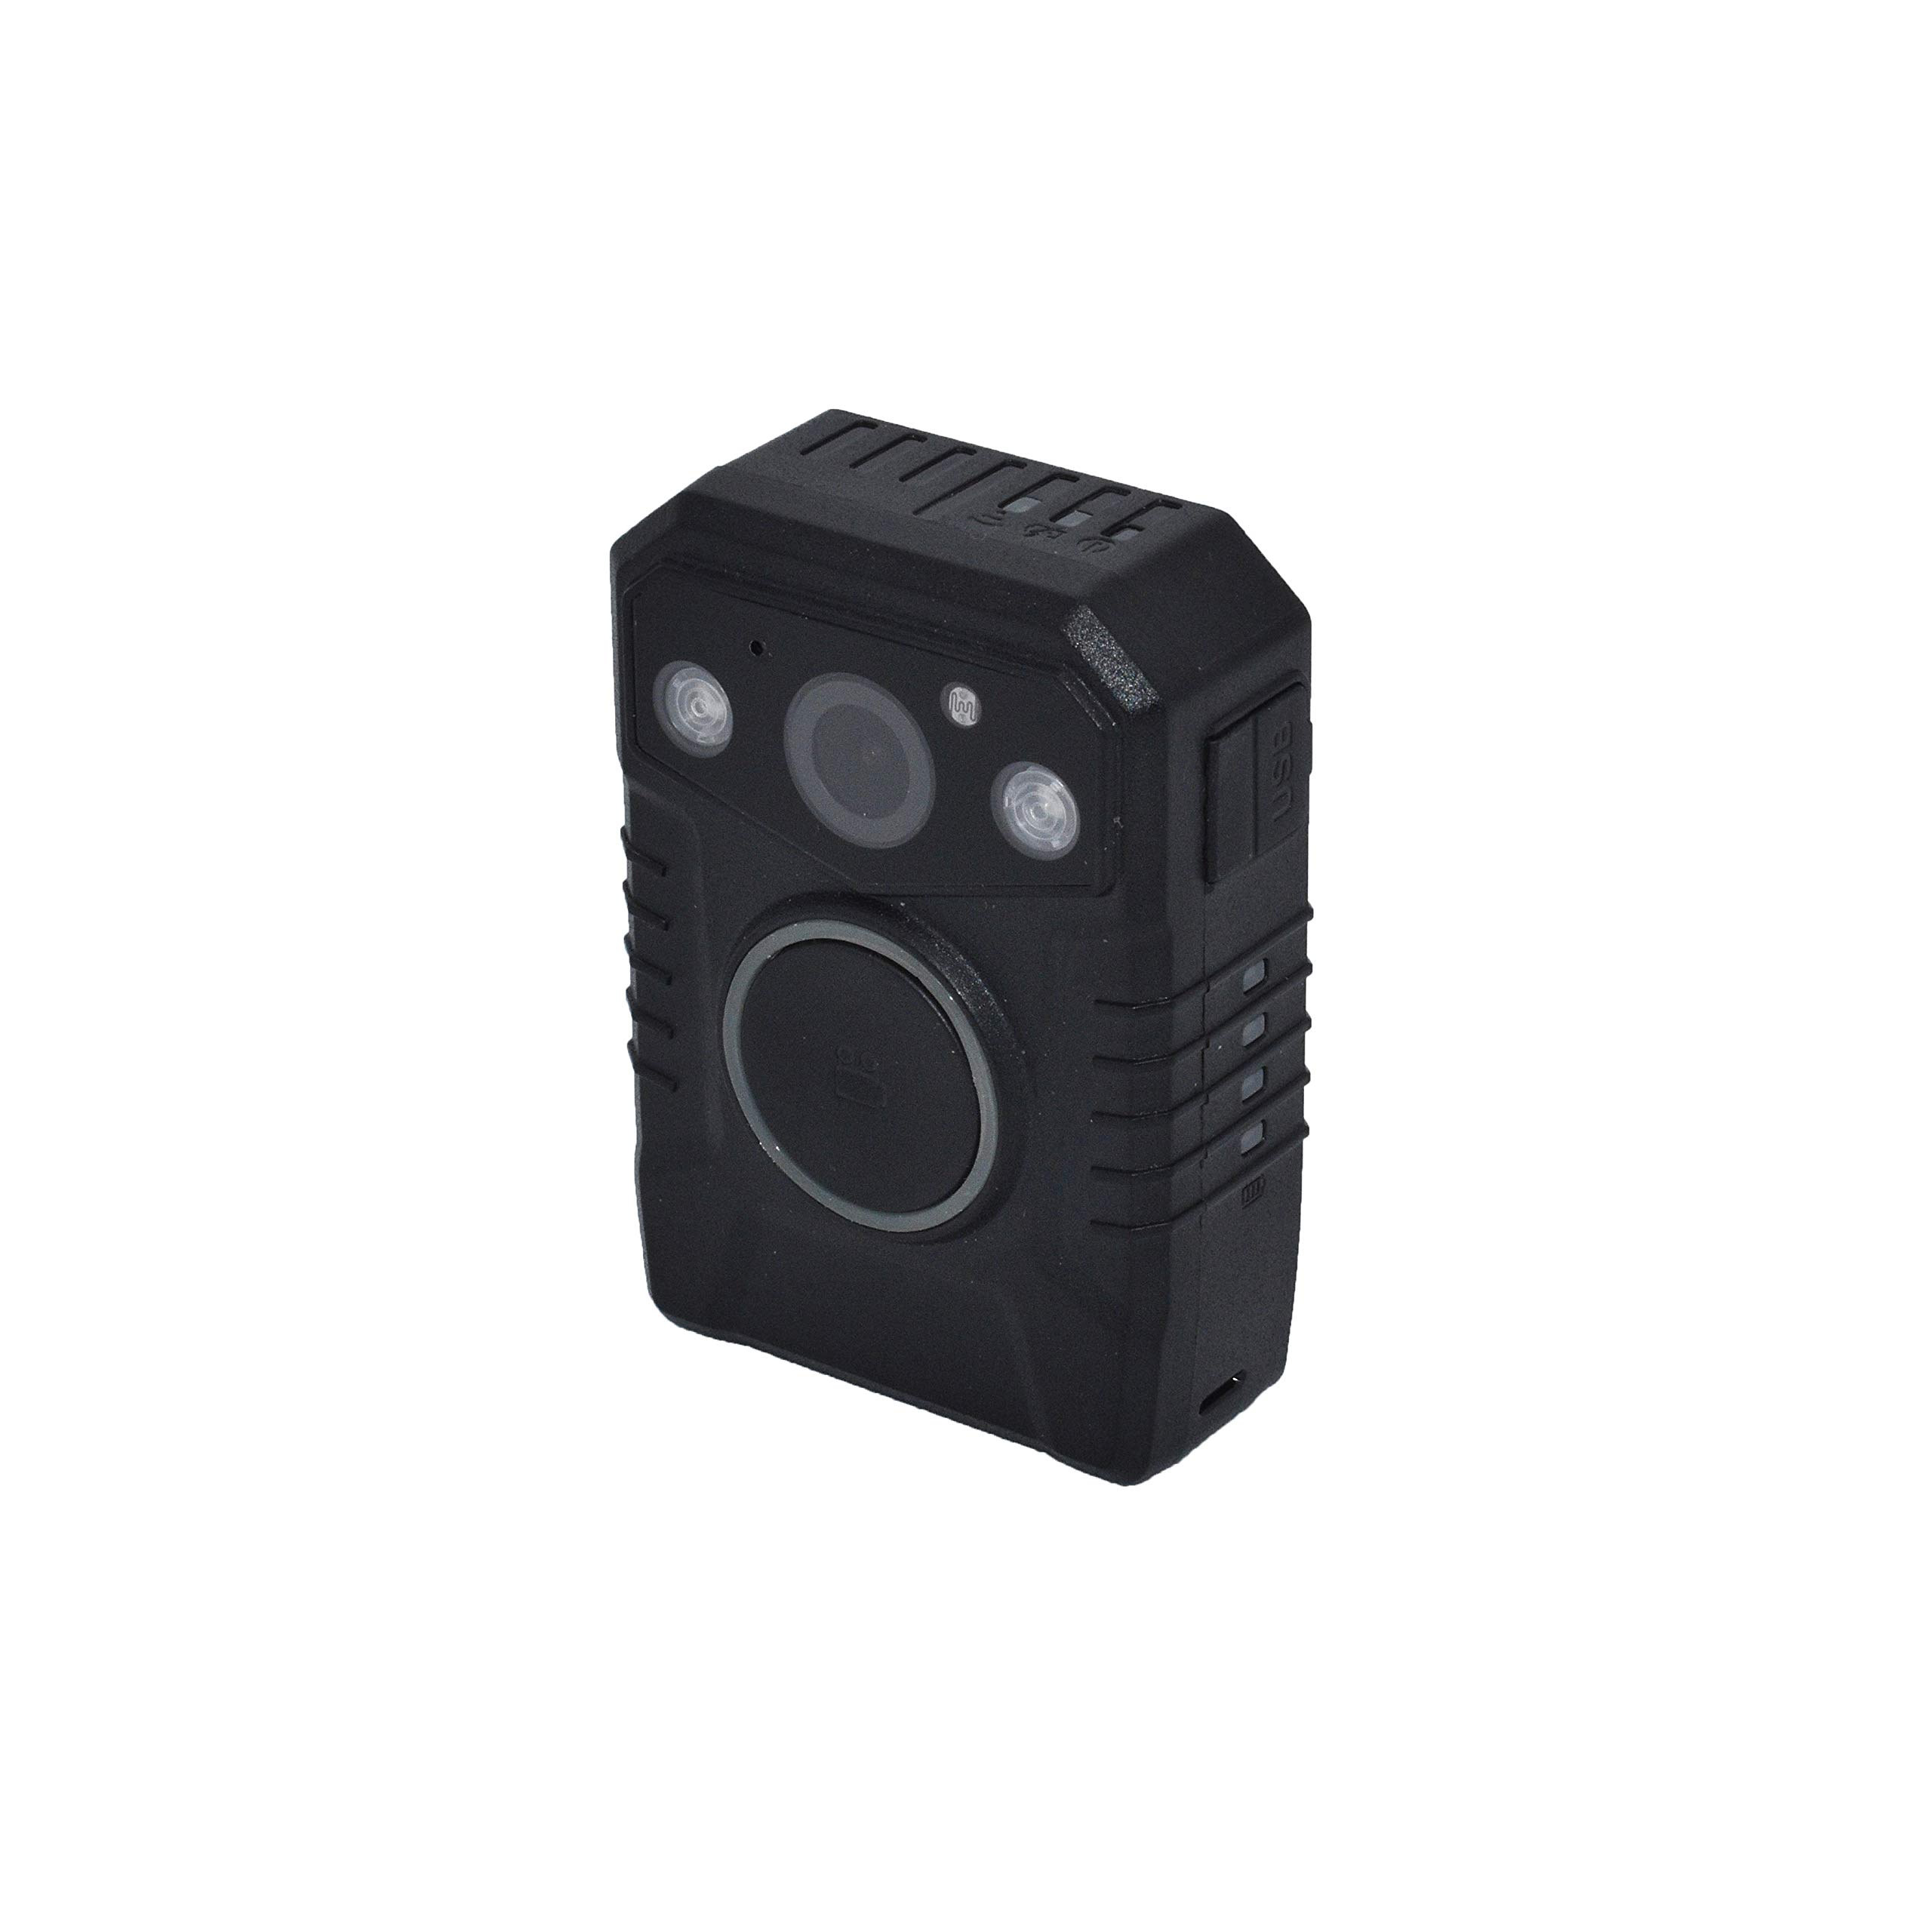 Minigadgets PCNVGPS1080P: Police Body Camera w/Night Vision, GPS Tracking, HDR by Mini Gadgets